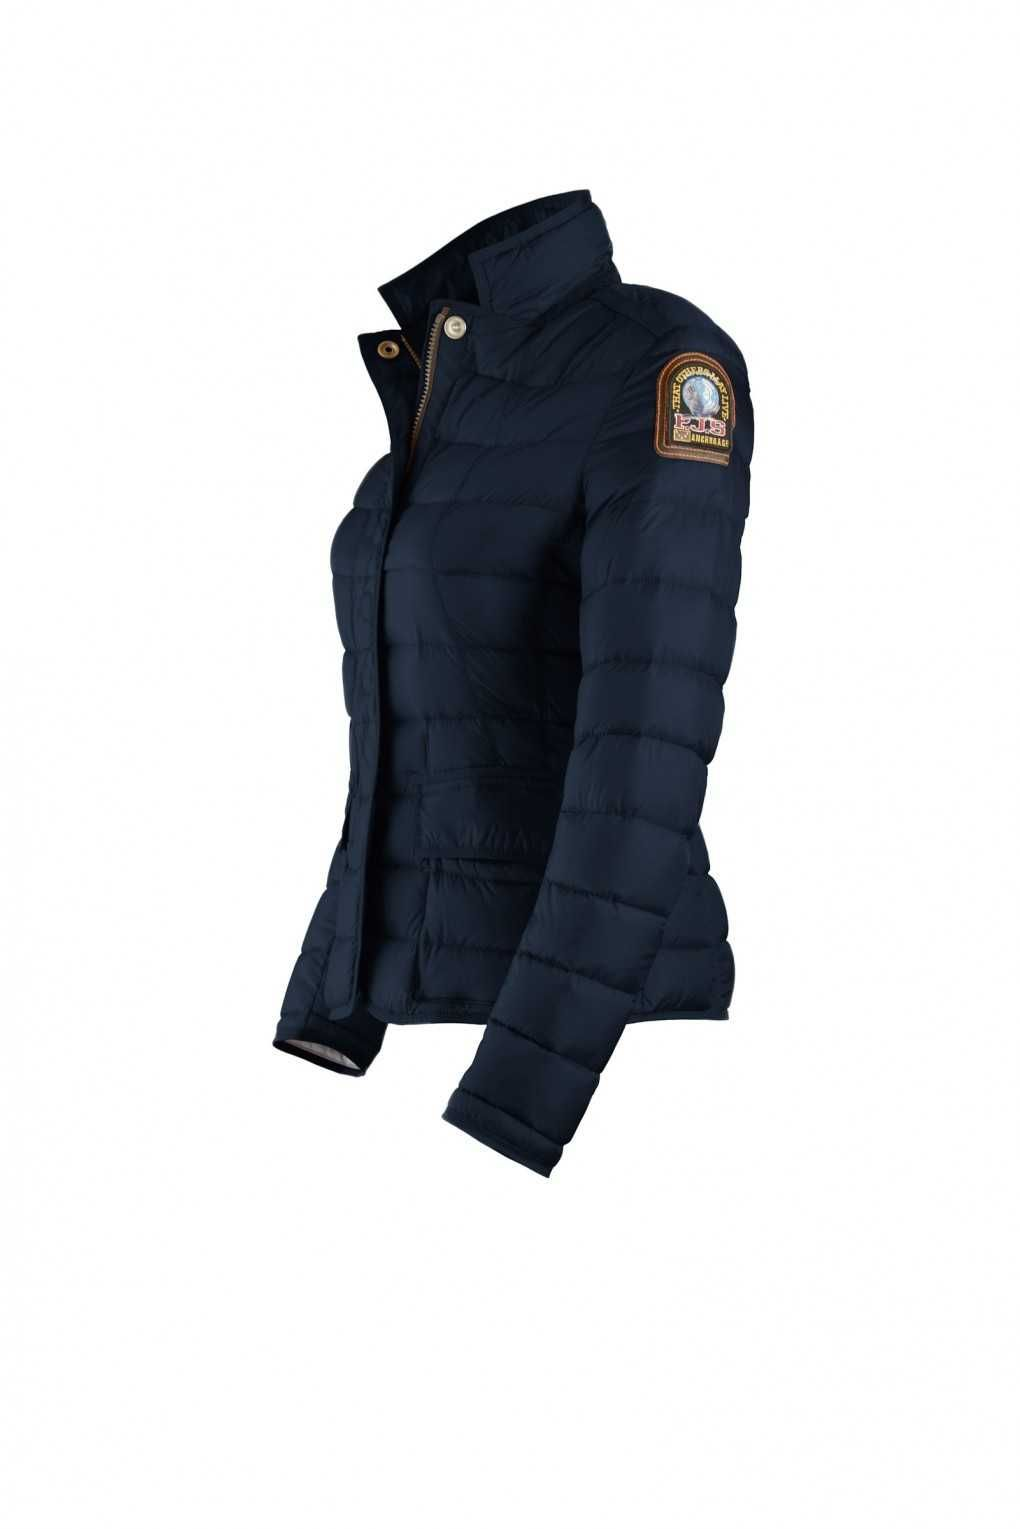 Parajumpers Jacket Replica - Shop Discount Parajumpers Long Bear Coat, Parajumpers Down Vest Women And Parajumpers Sale Online for Women,Men And Kids,100% ...